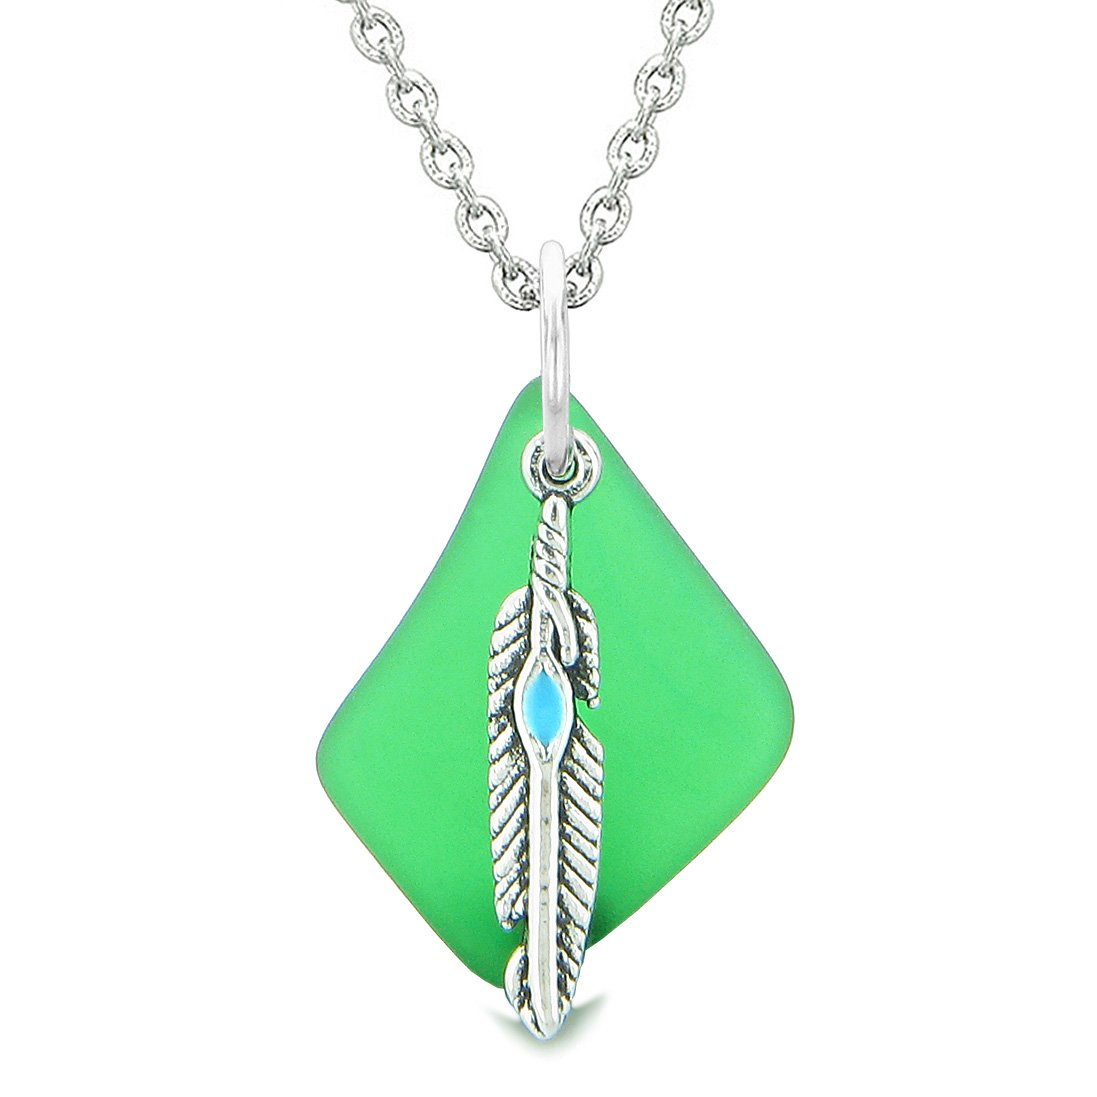 Handcrafted Free Form Sea Glass Ocean Green Amulet Arrowhead Shaped Feather Magic Powers 18 Inch Necklace